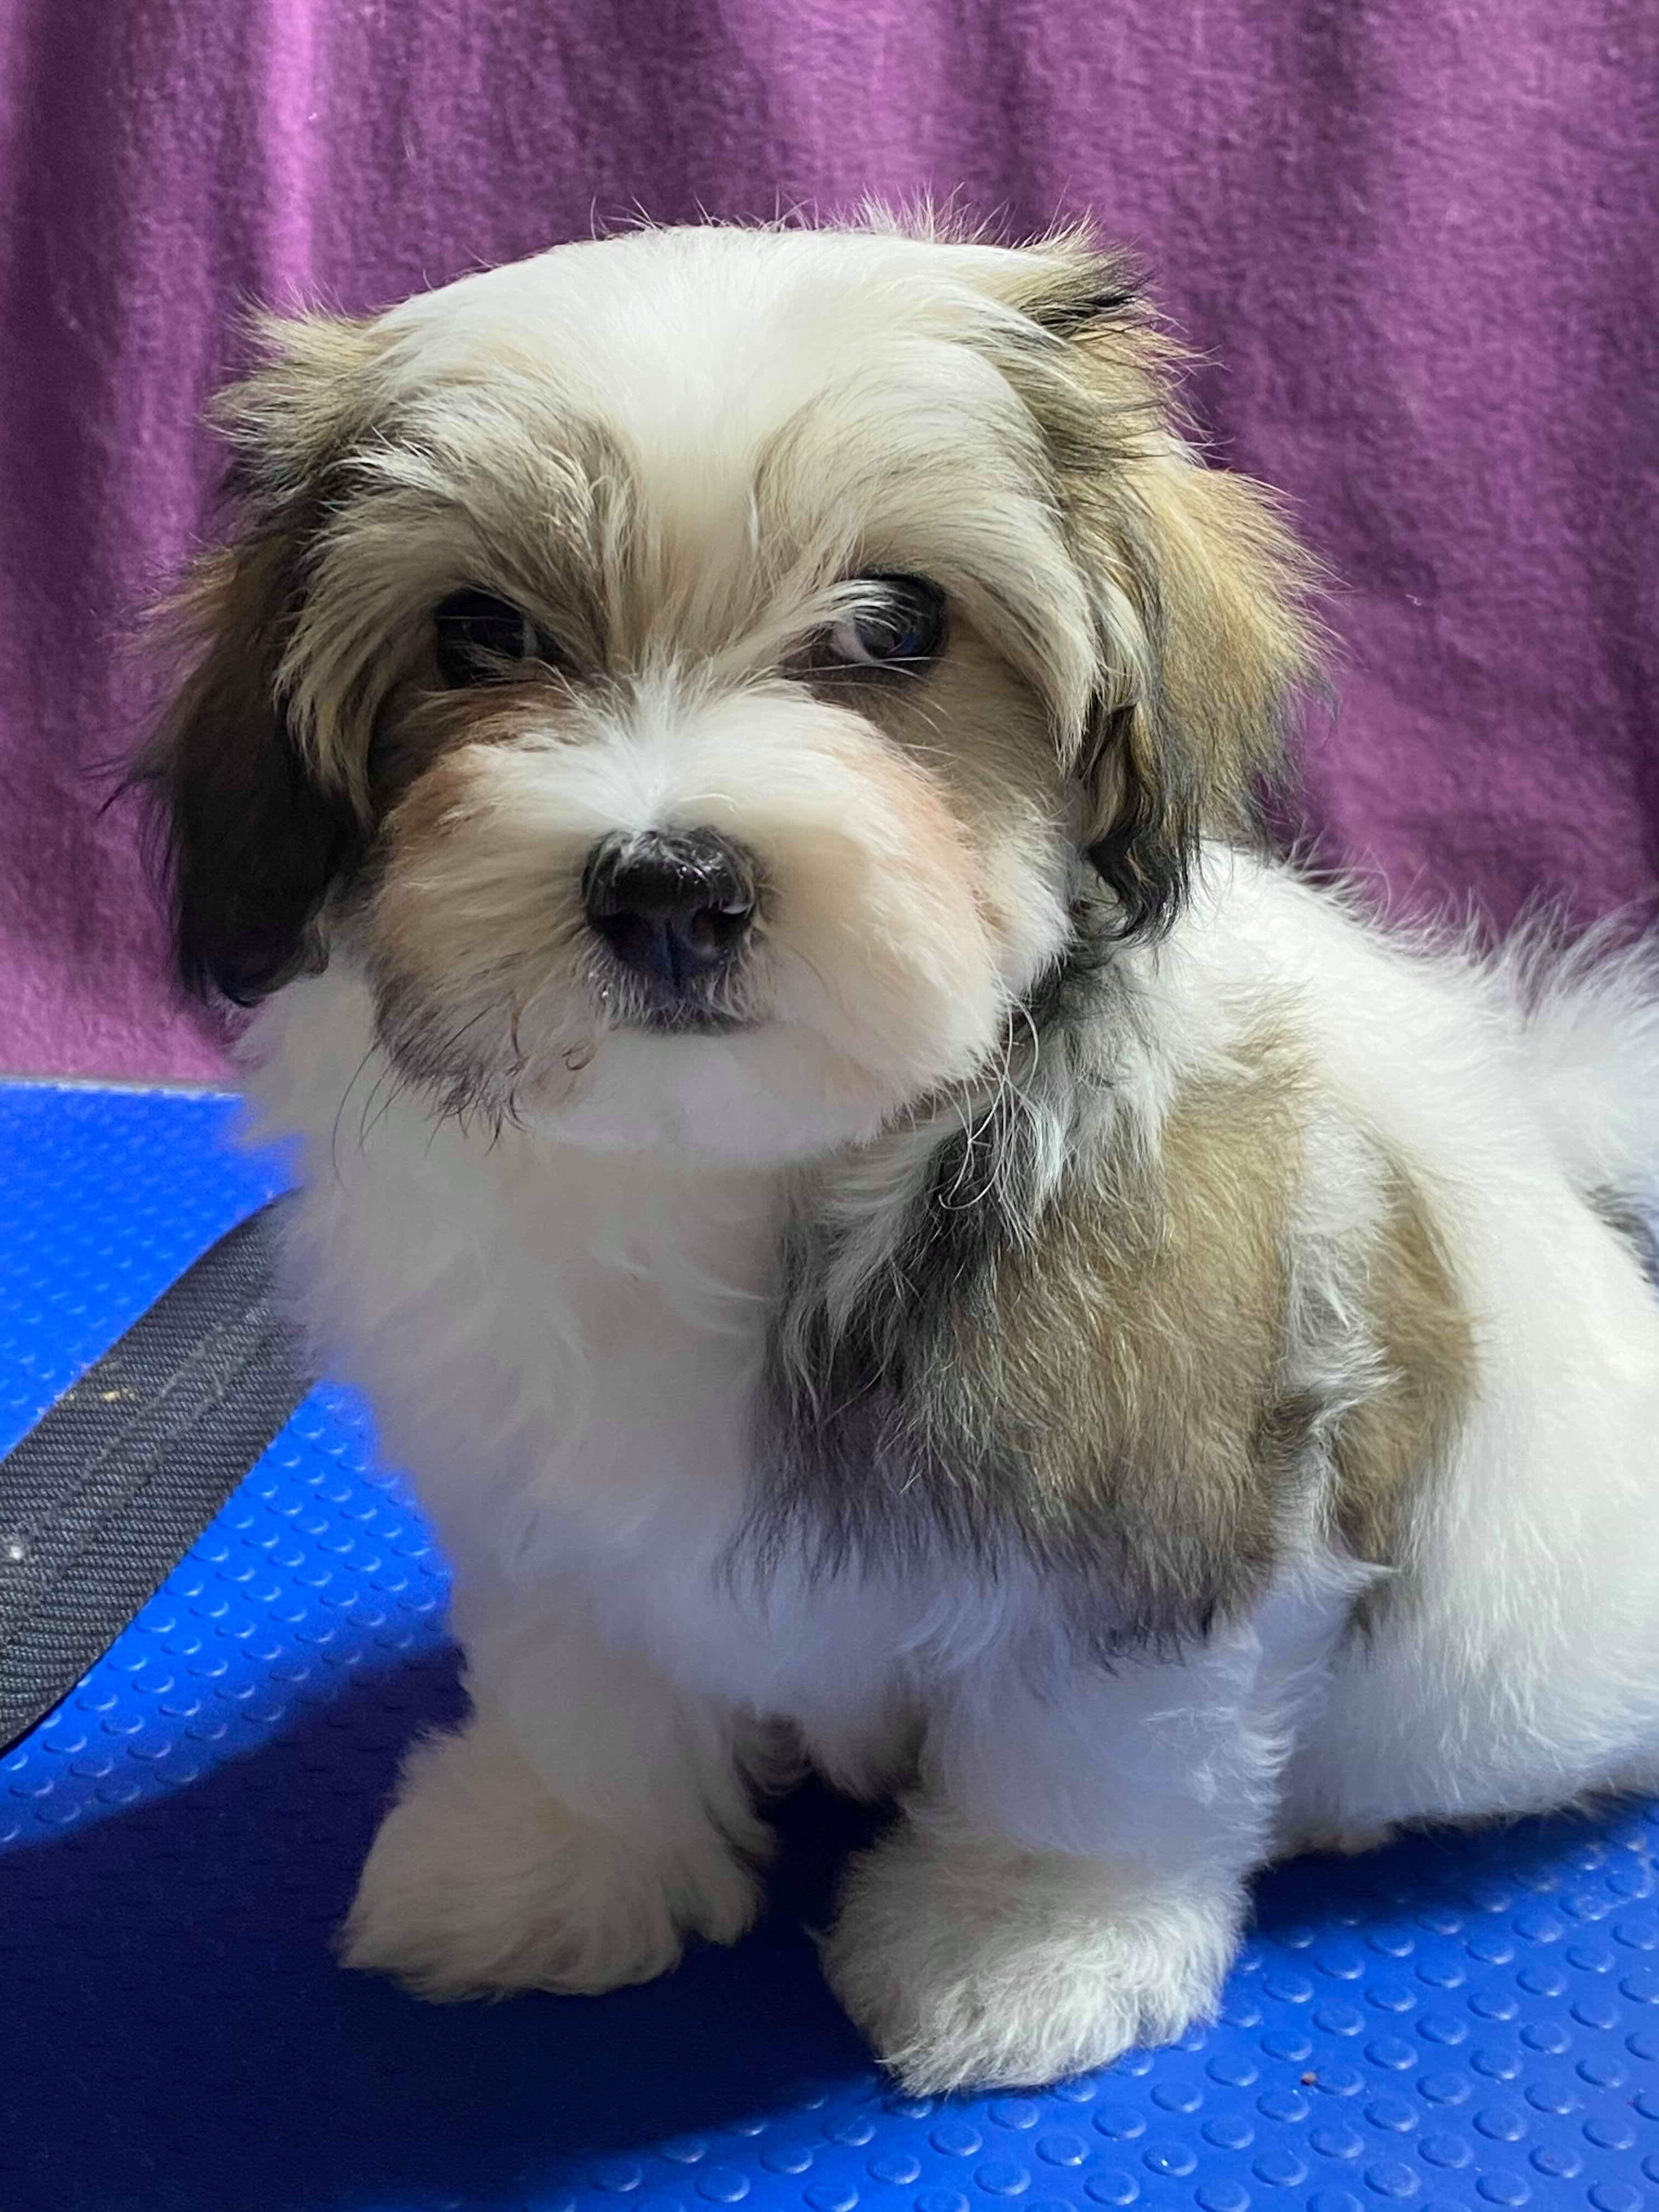 One of beautiful puppies gallery image